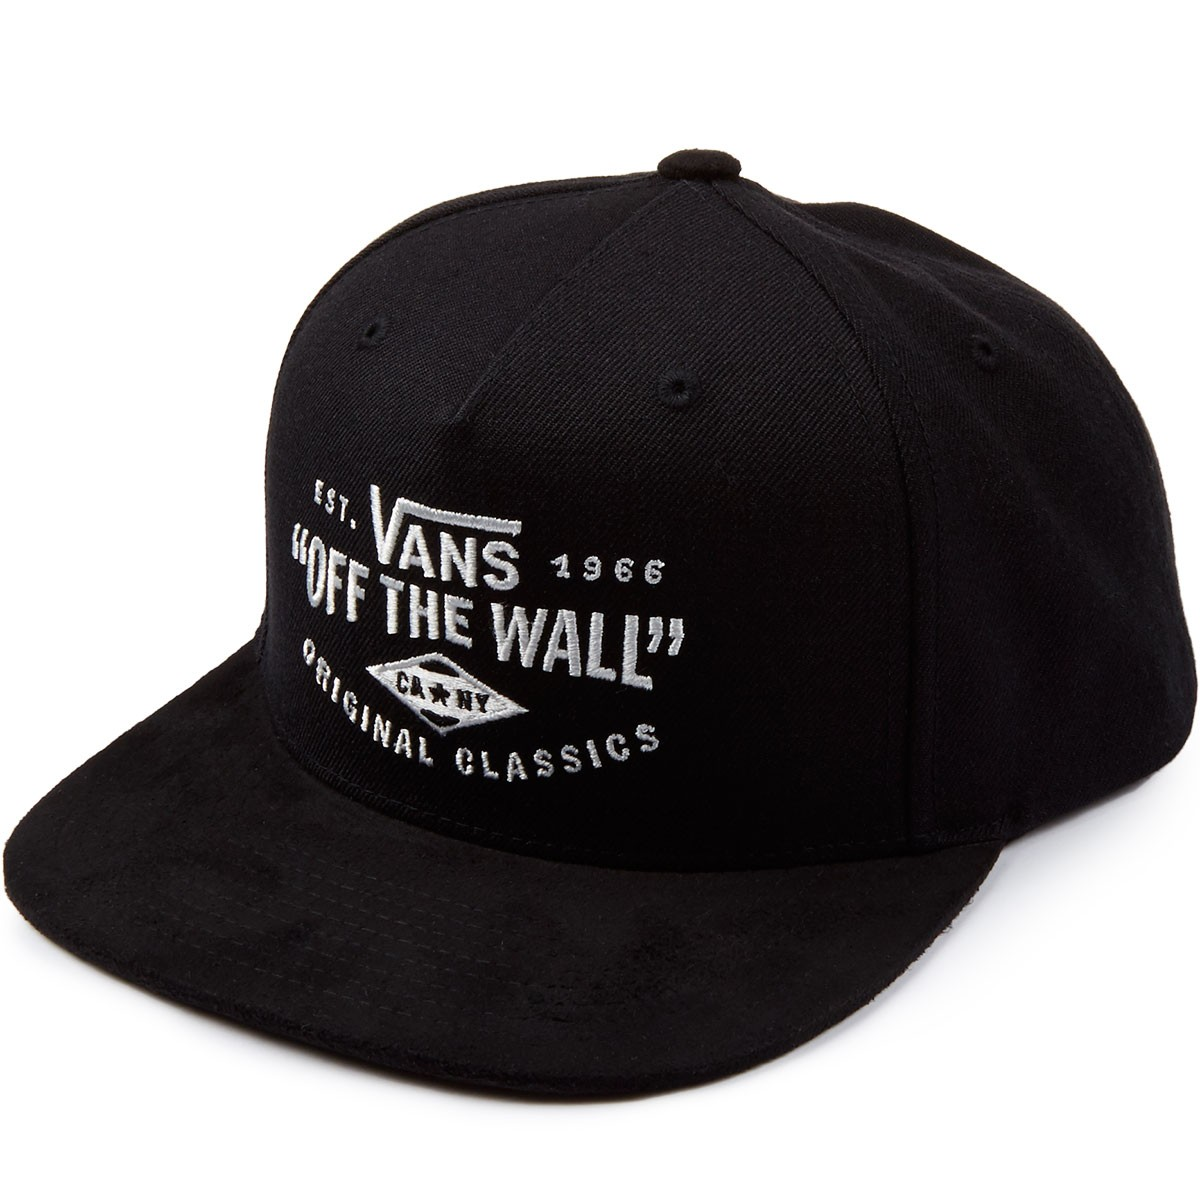 vans off the wall hat snapback sale   OFF53% Discounts 304848540000